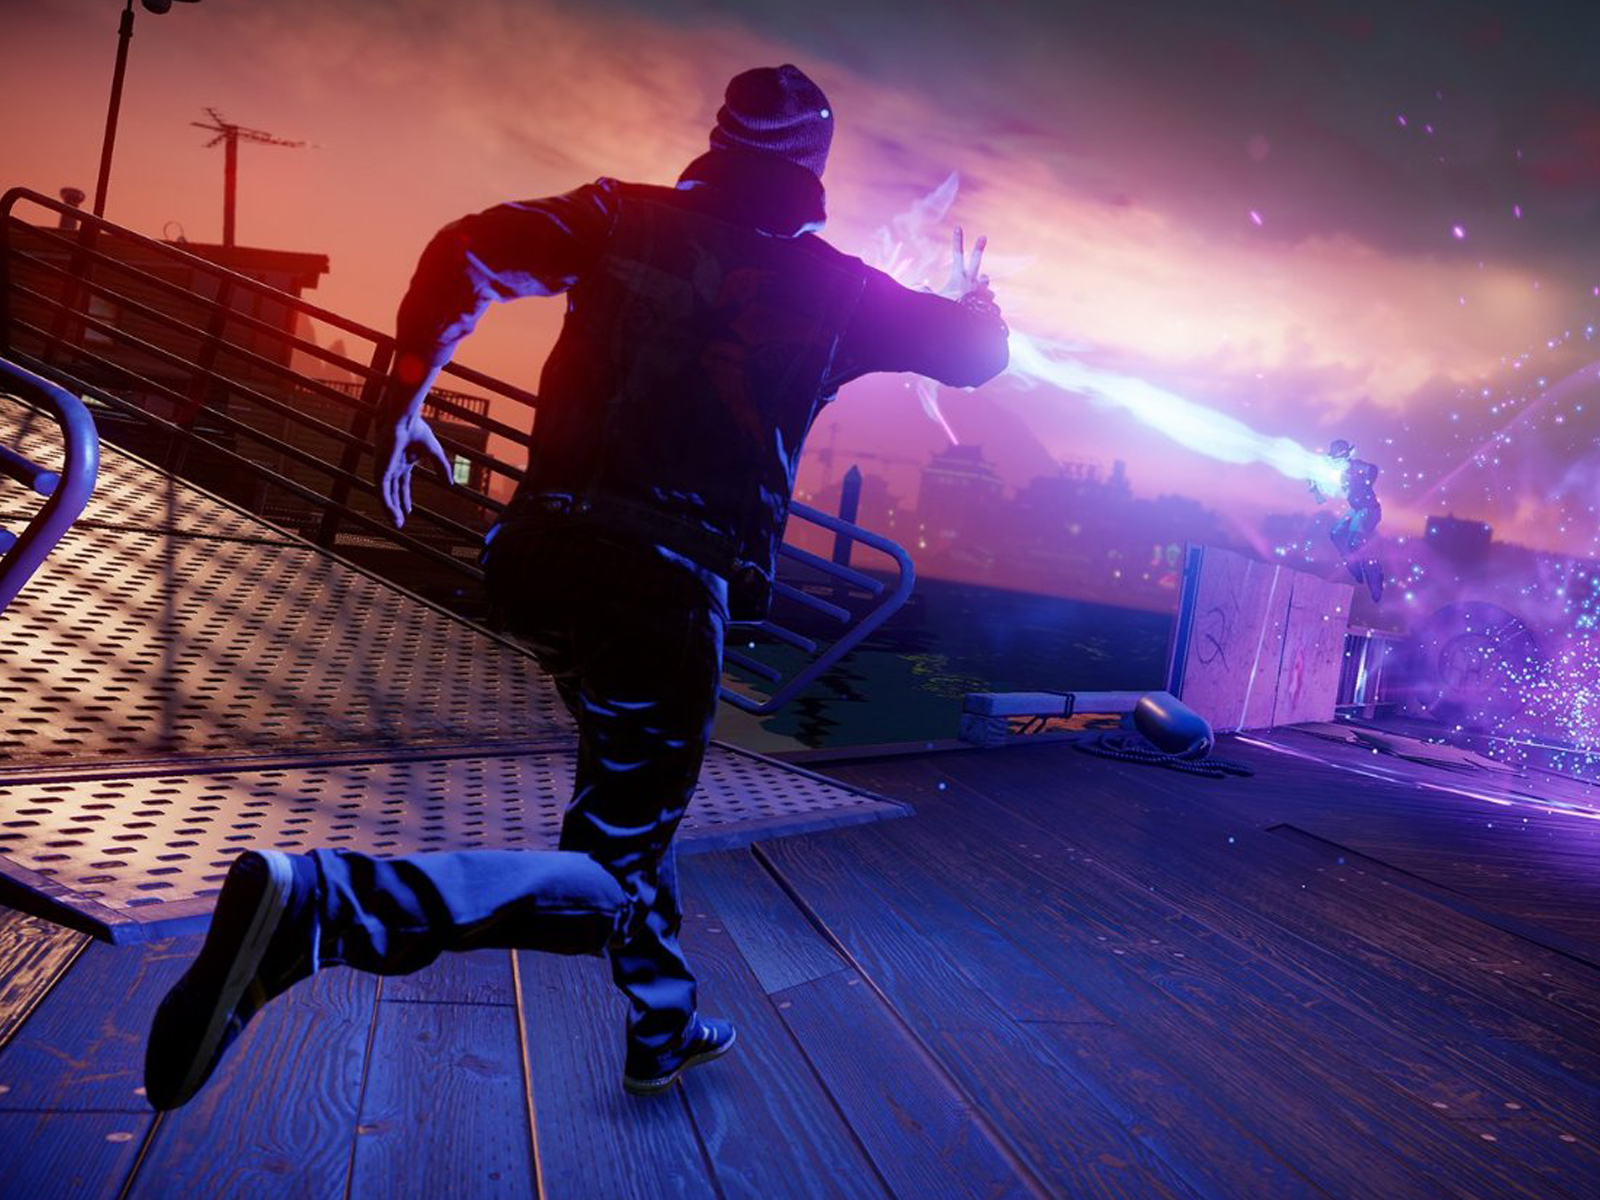 Screenshot of Infamous Second Son protagonist Delsin Rowe on a dock at night, running toward two assailants